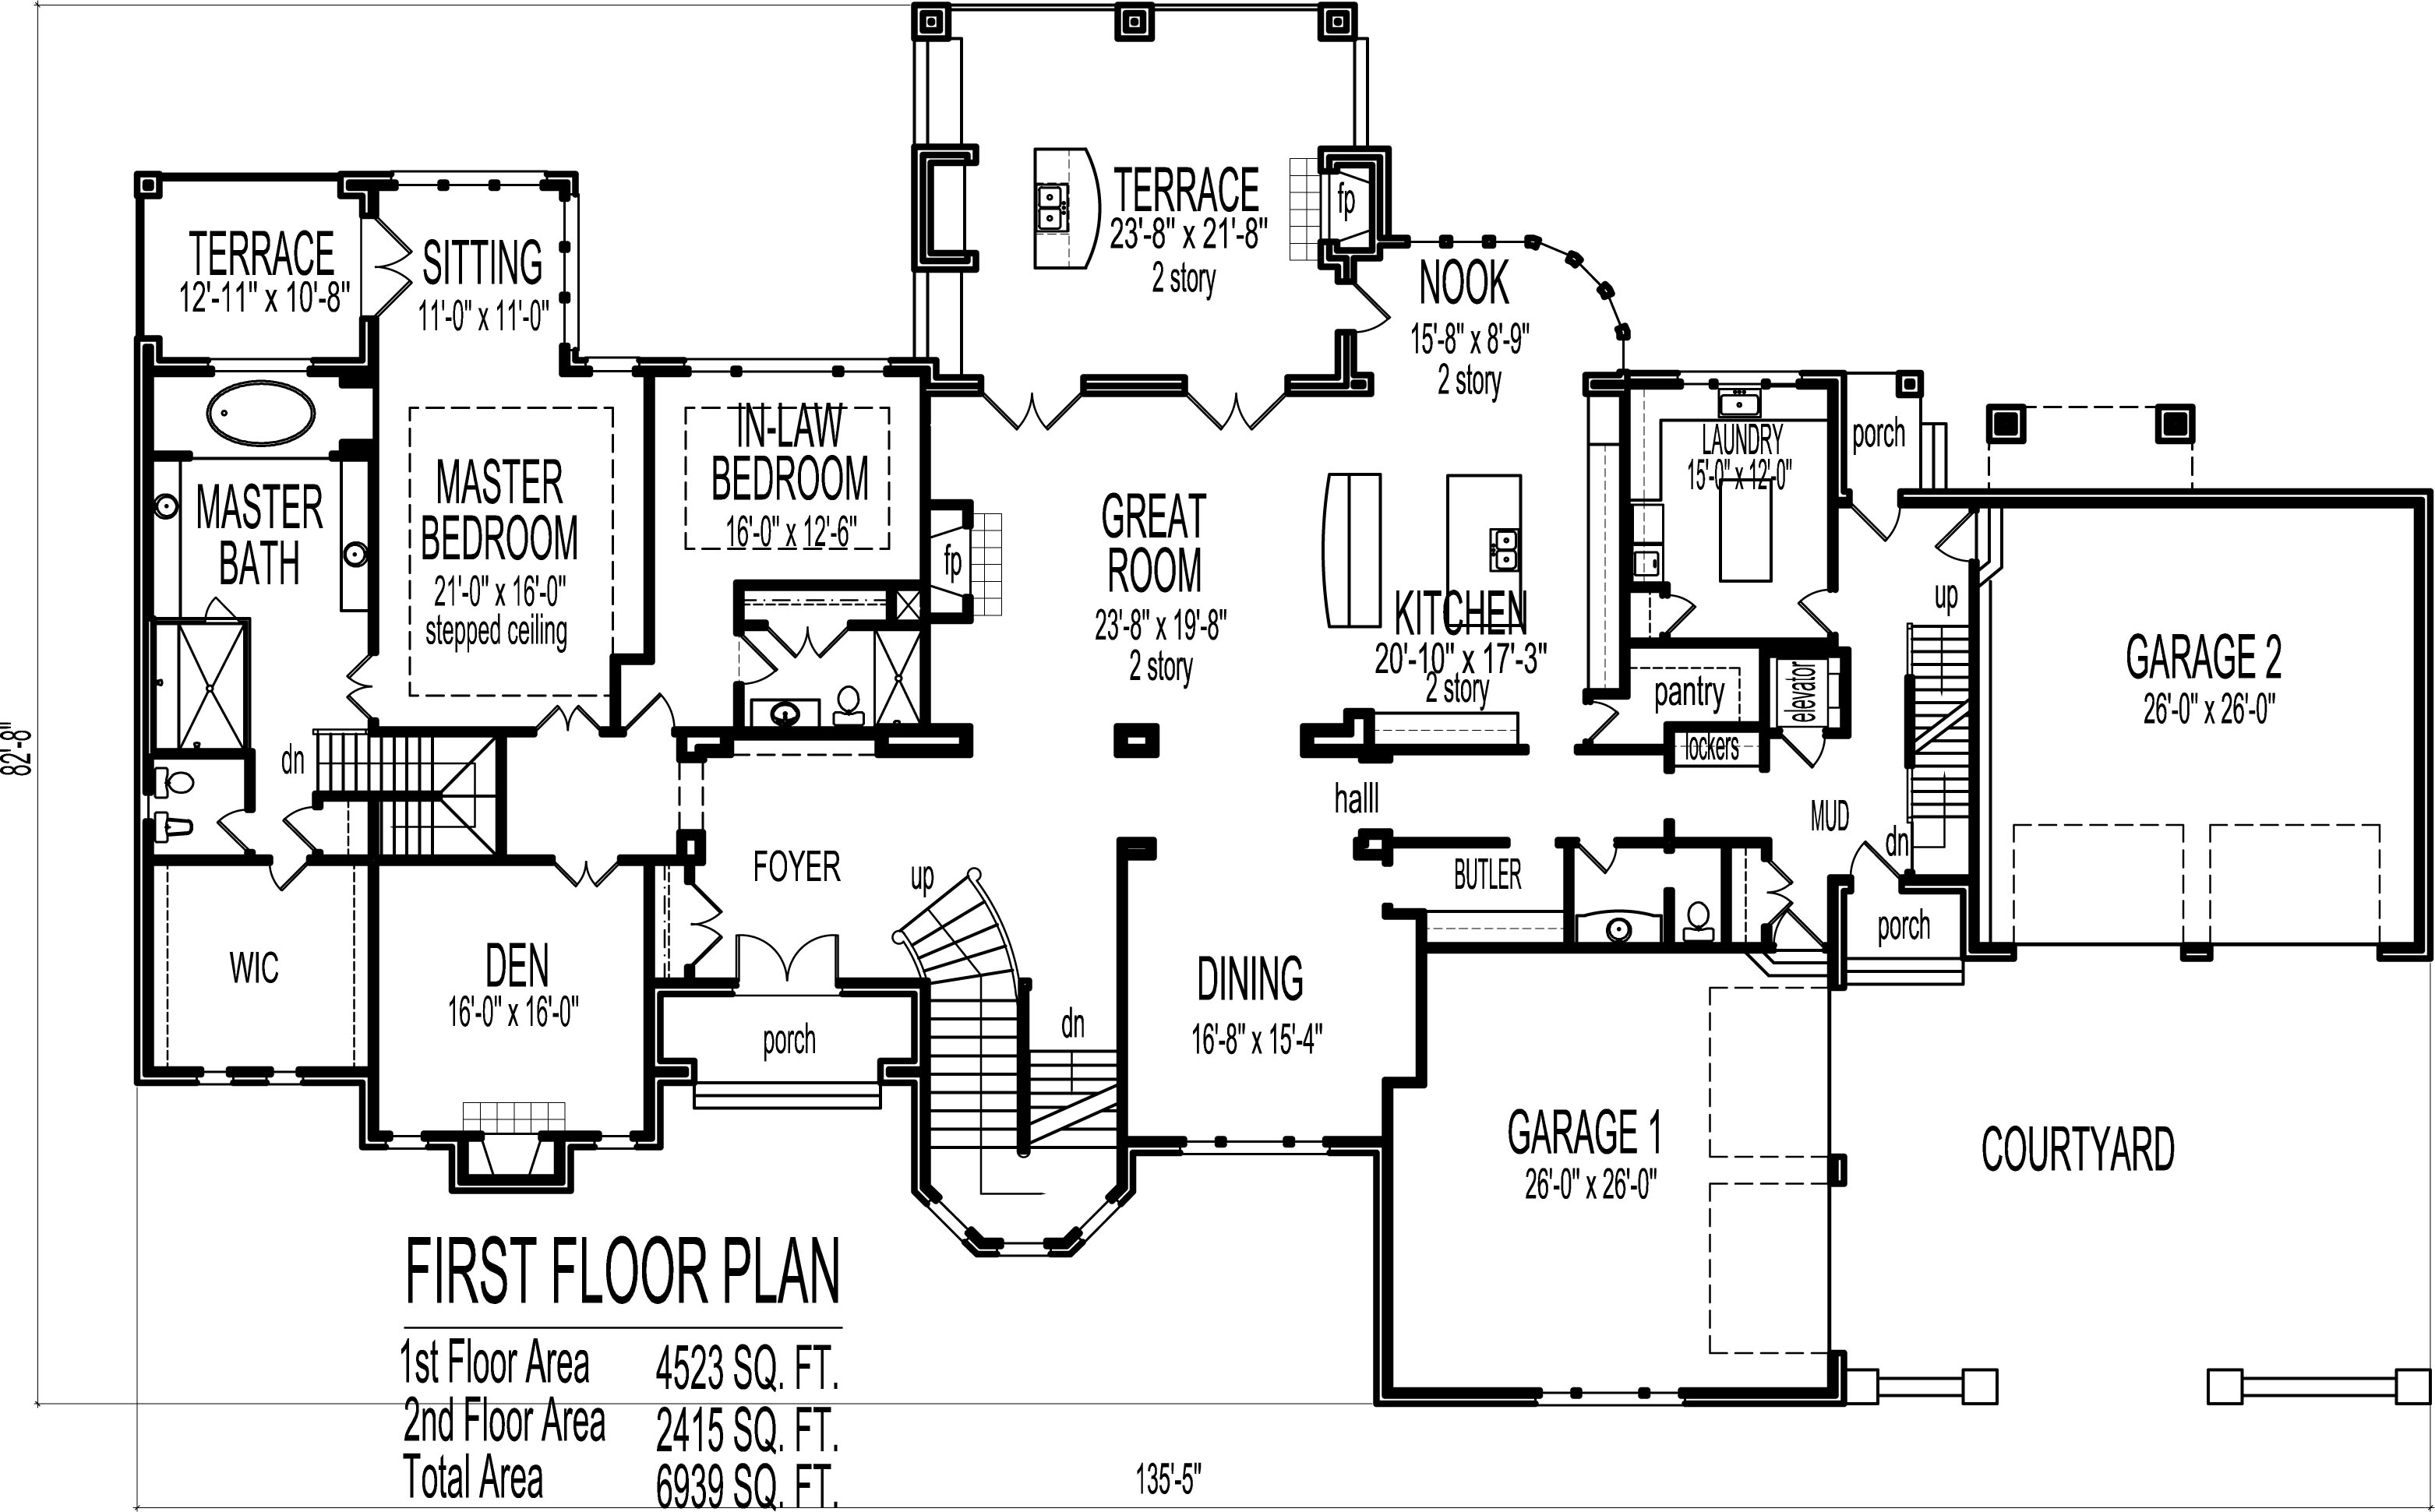 Dream house floor plans blueprints 2 story 5 bedroom large for 5 bedroom house designs